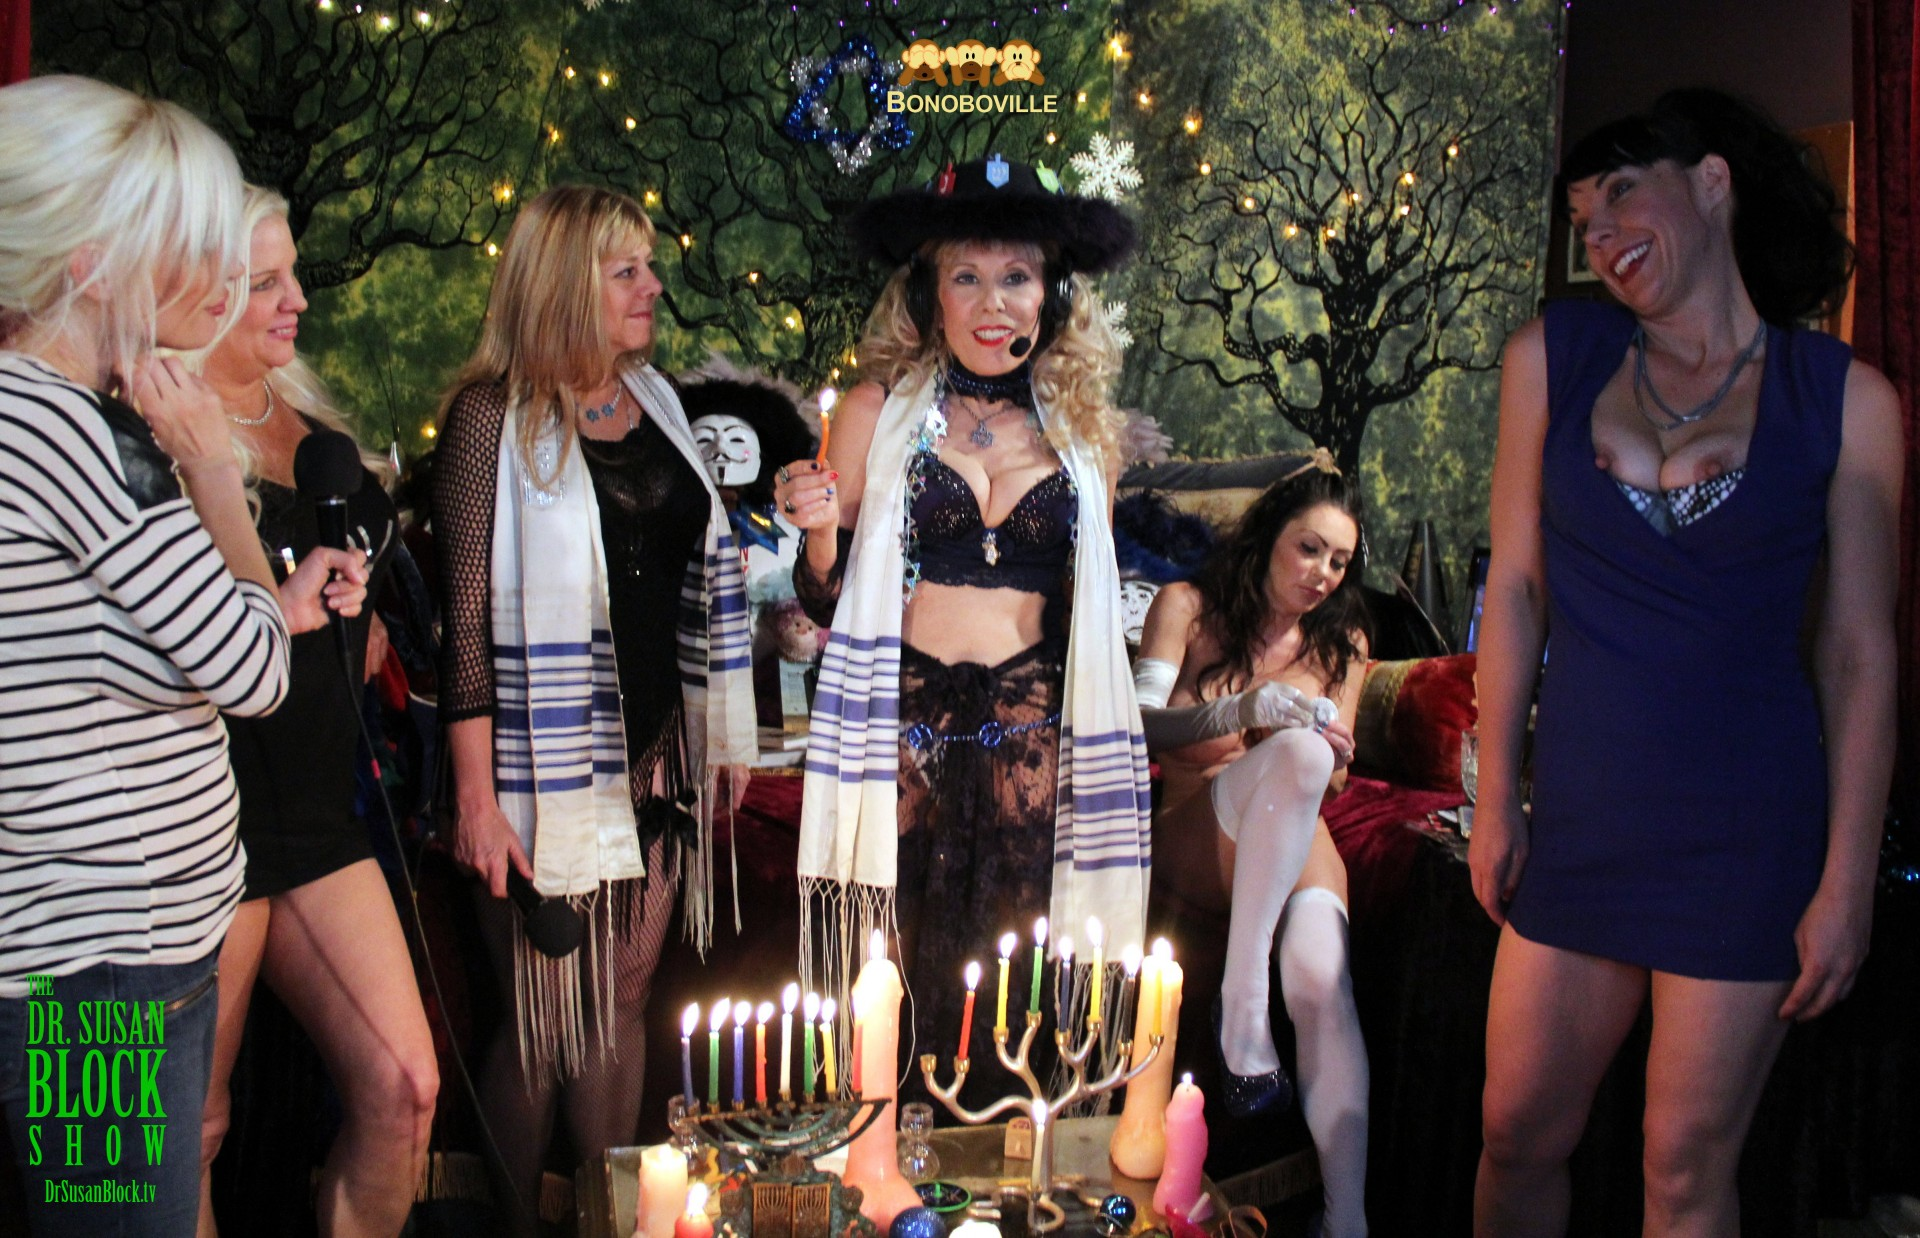 Is that Hillary Clinton joining us for Hanukkah in Bonoboville? Photo: Ono Bo